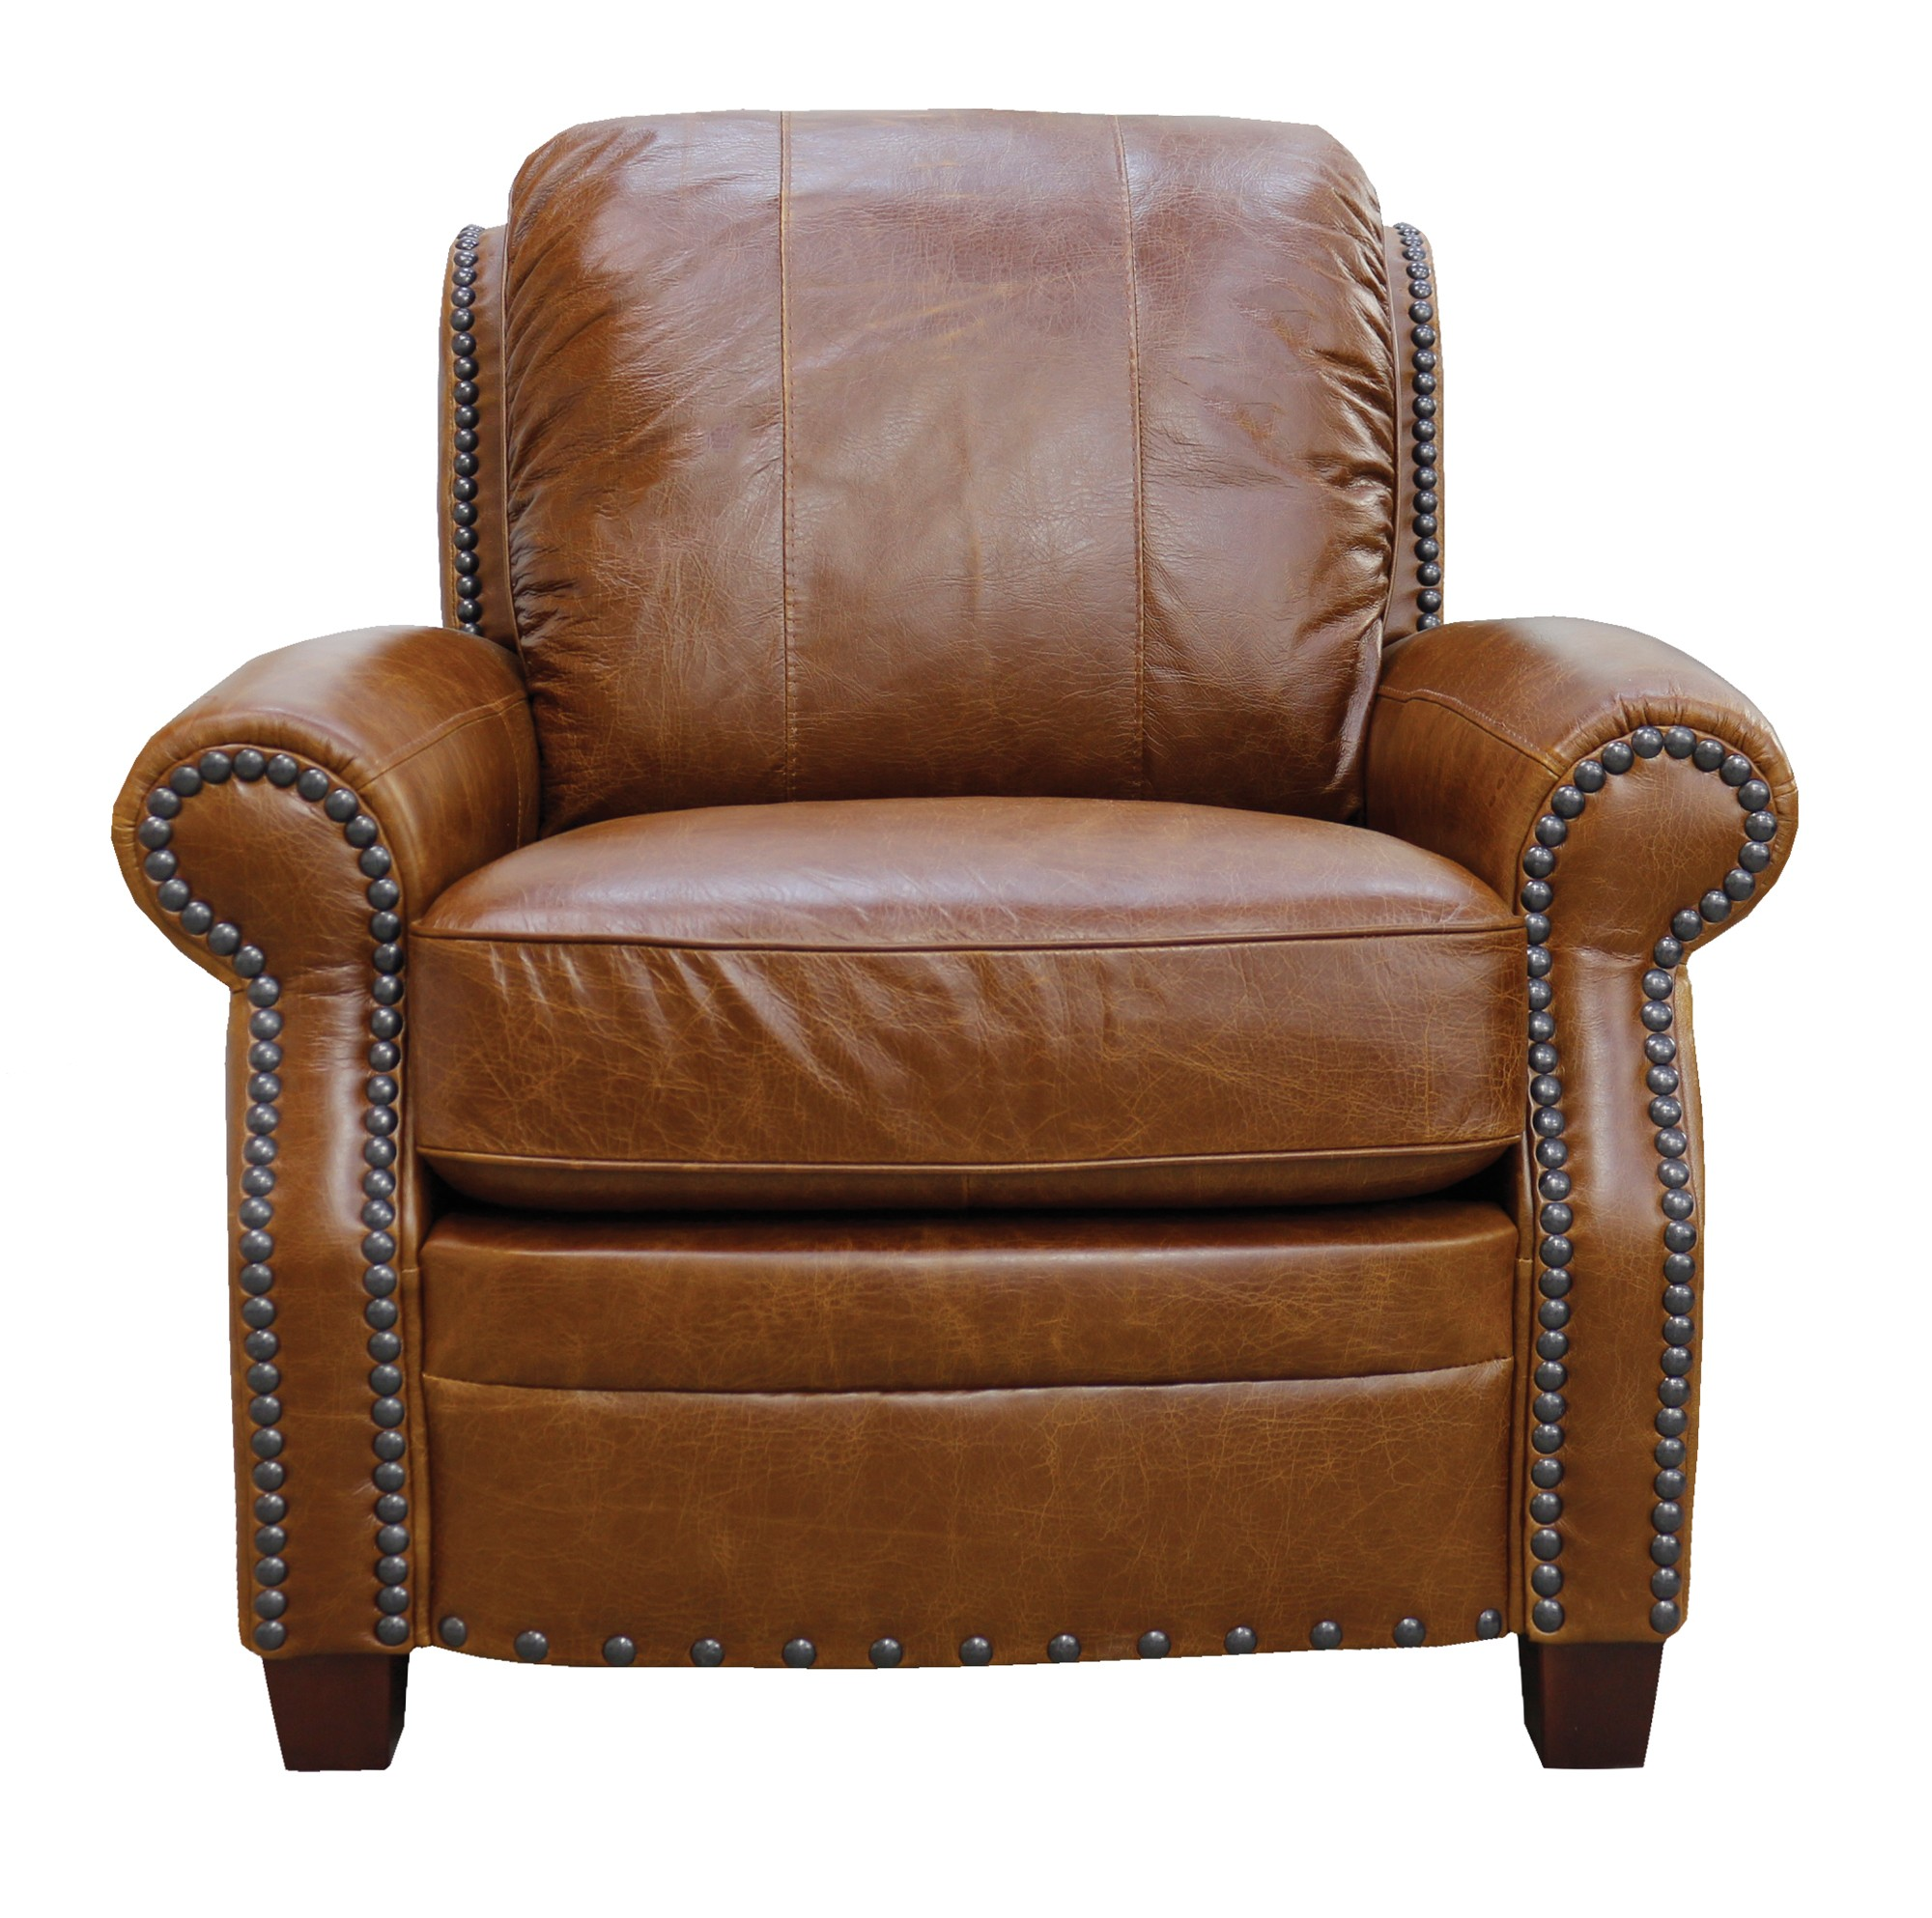 Excellent Ashton Collection Luke Leather Furniture Cjindustries Chair Design For Home Cjindustriesco